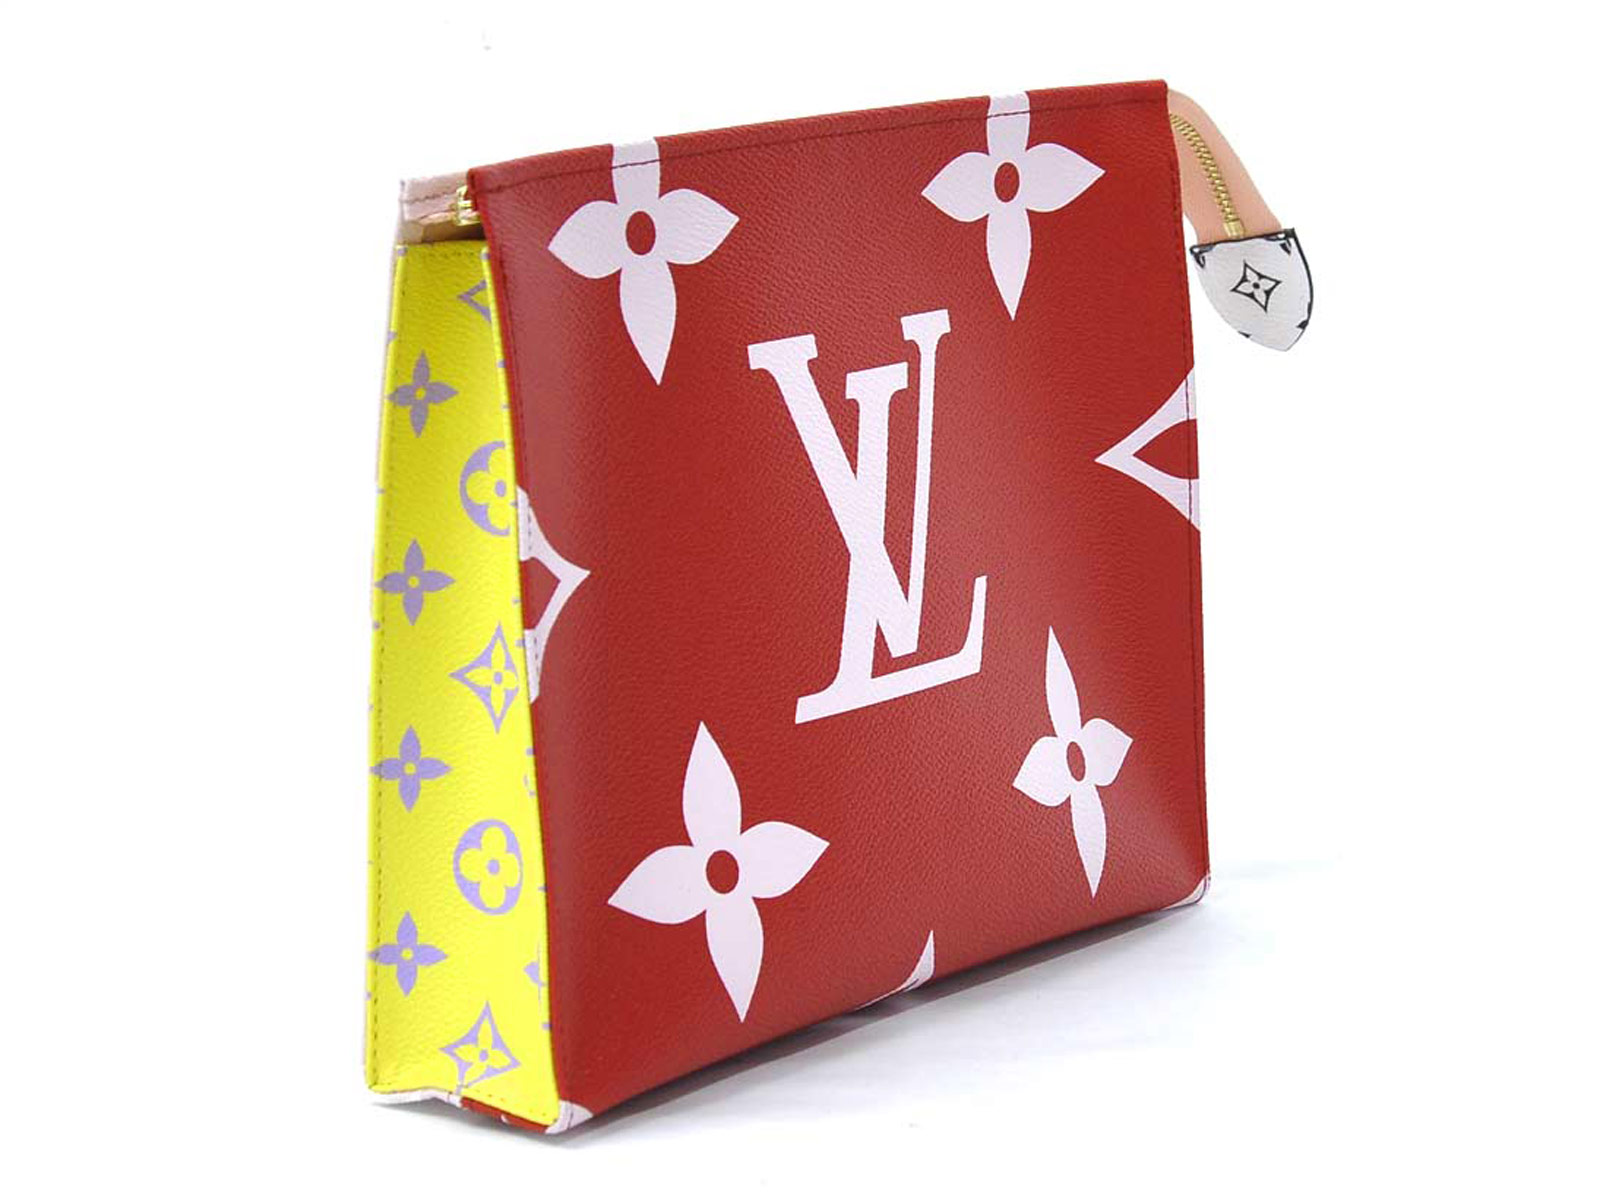 Auth-Louis-Vuitton-Monogram-Giant-Pochette-Toilette-Clutch-Bag-Rouge-Pink-96998 thumbnail 4